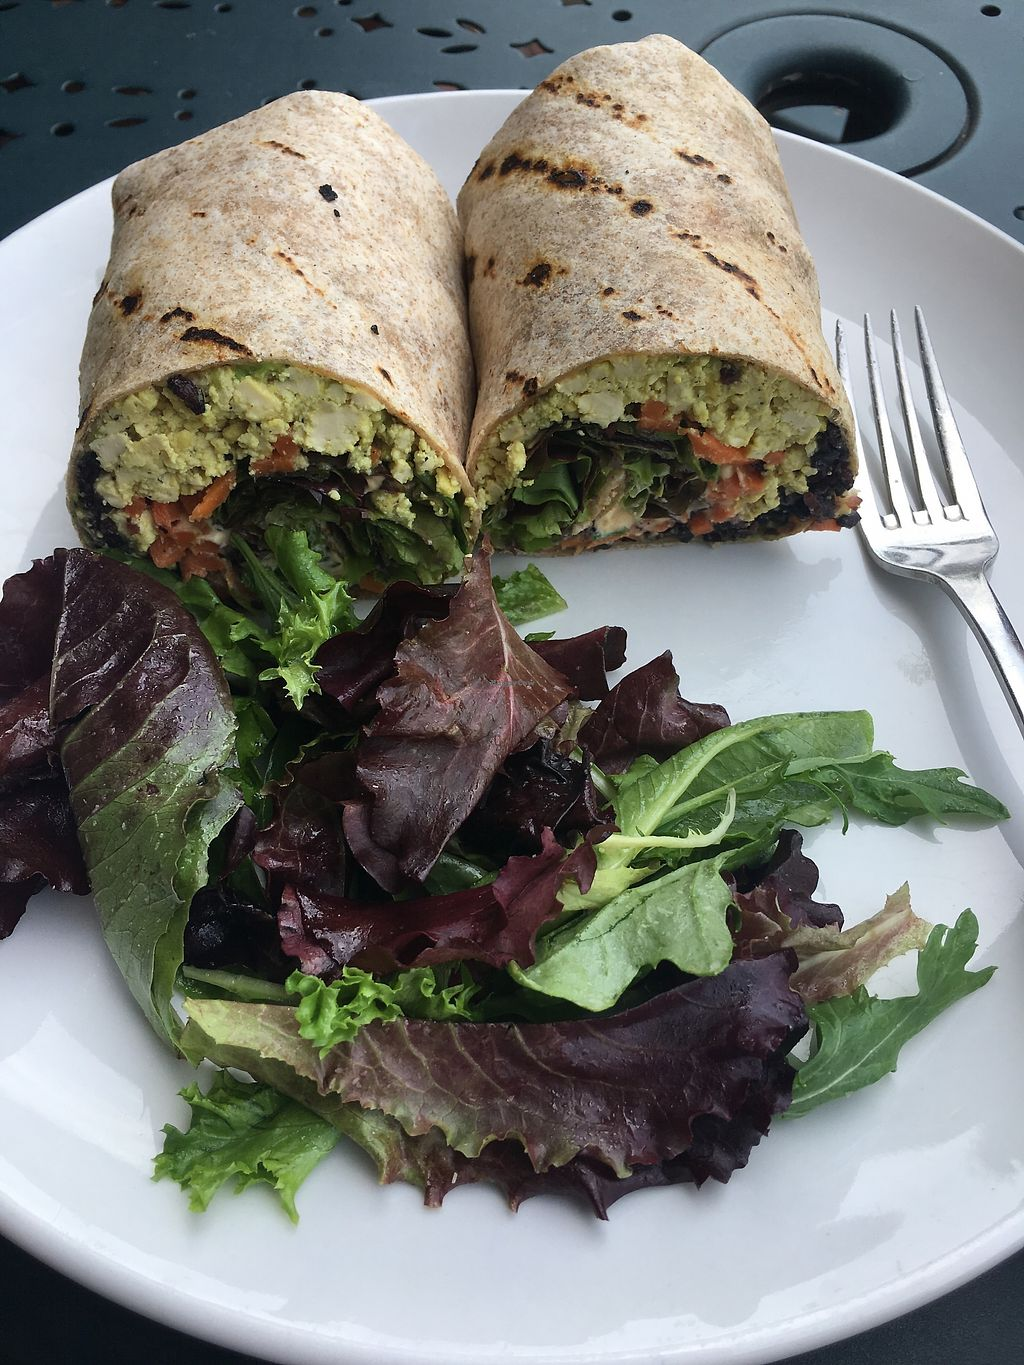 "Photo of Sprig and Vine  by <a href=""/members/profile/kierafitz"">kierafitz</a> <br/>Amazing Forbidden Breakfast Burrito with tofu, avocado, and forbidden black rice <br/> June 29, 2017  - <a href='/contact/abuse/image/21089/274906'>Report</a>"